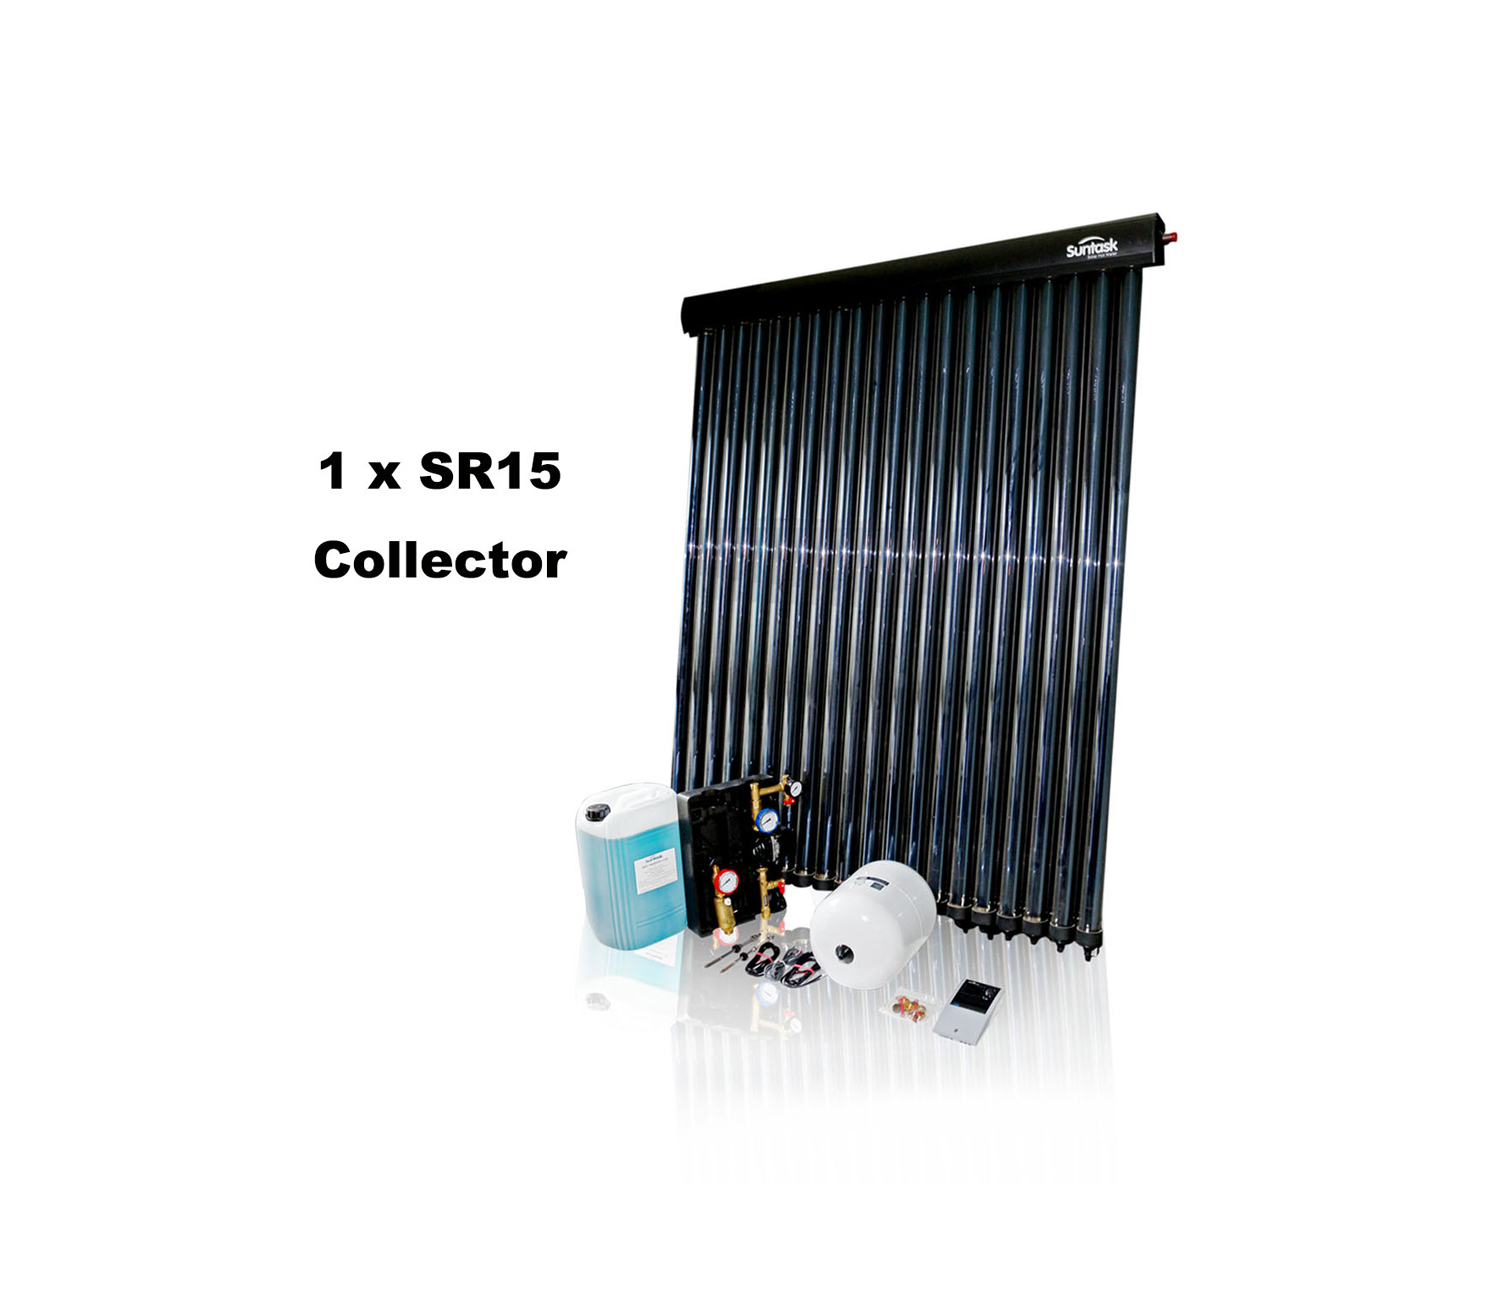 Suntask full Solar Thermal Kits excluding Cylinders 15 Tube System (1 x SR15 Collector)